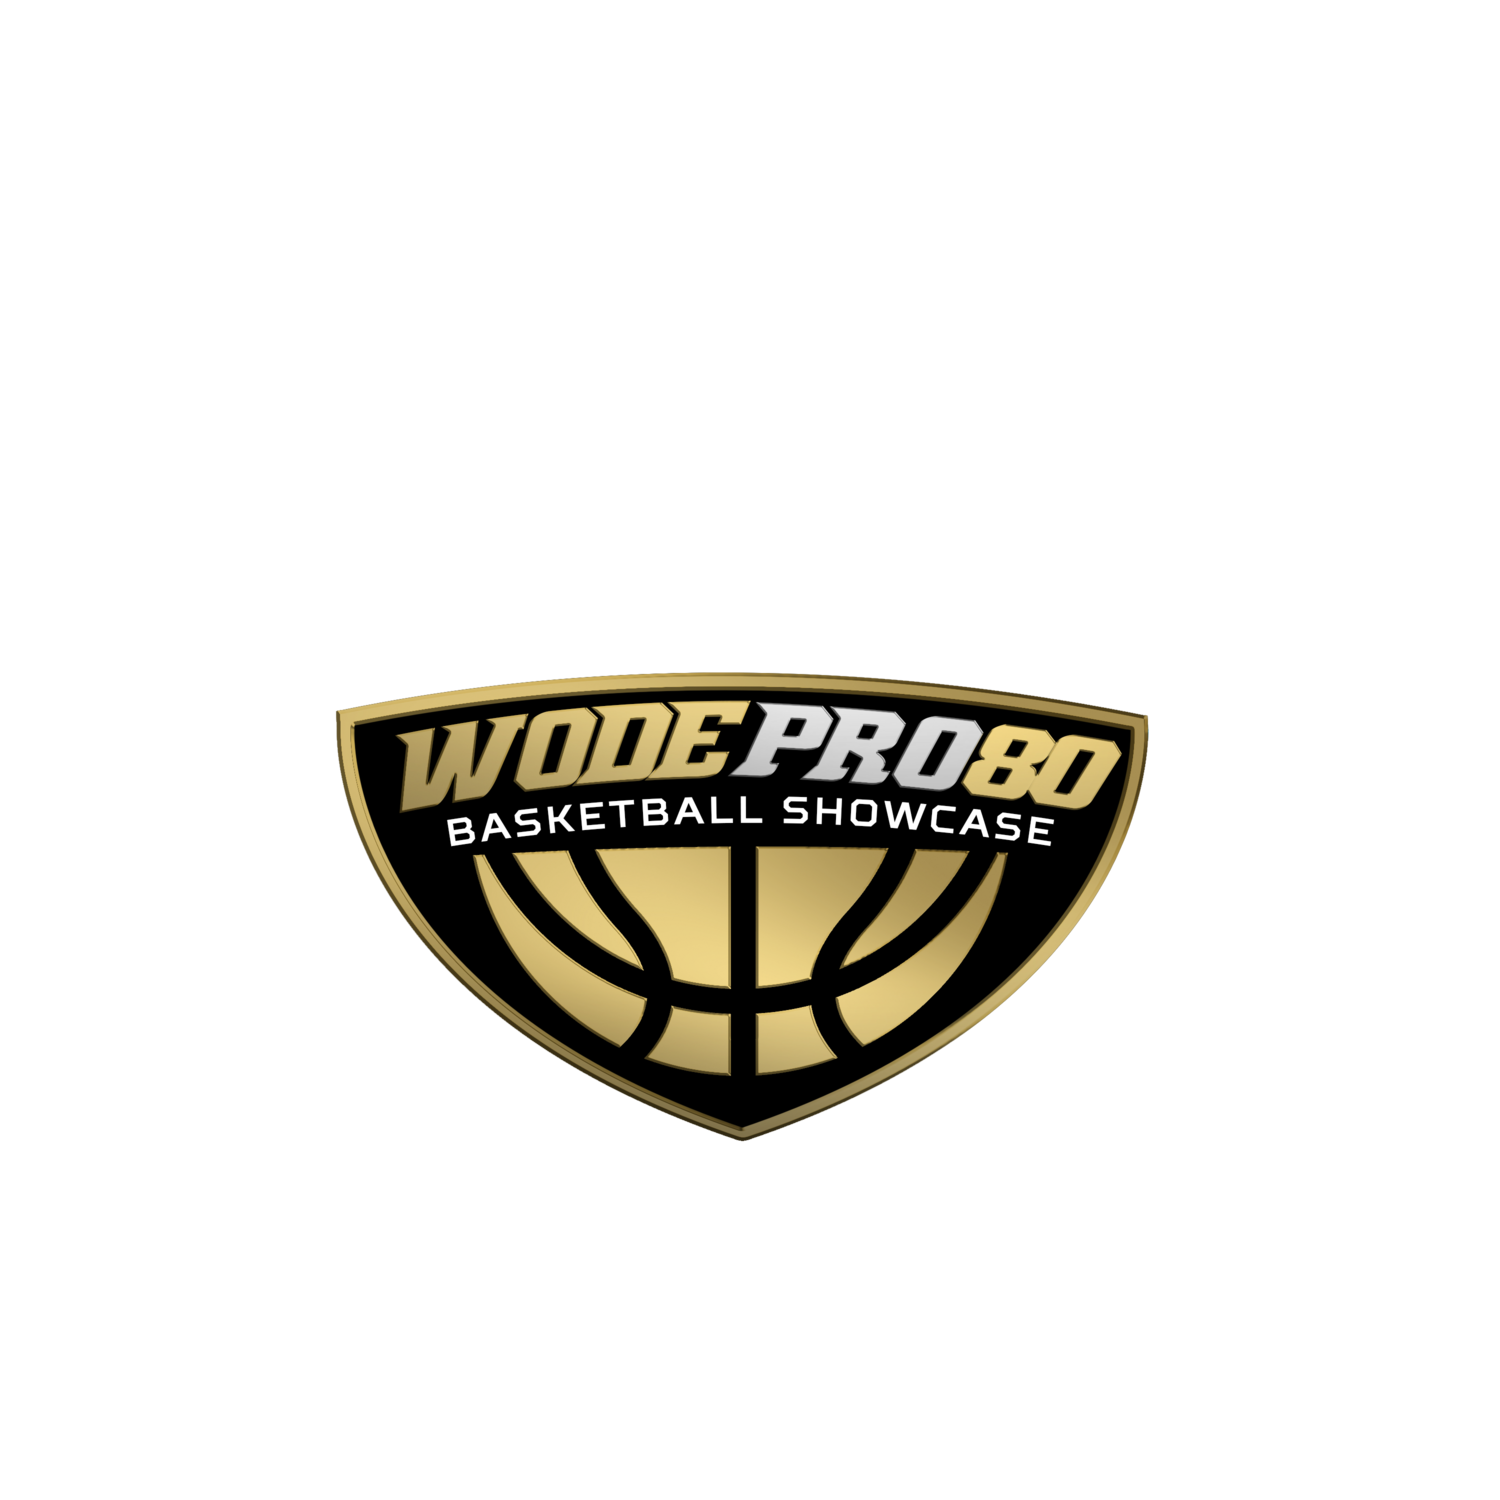 WODE PRO 80 BASKETBALL SHOWCASE